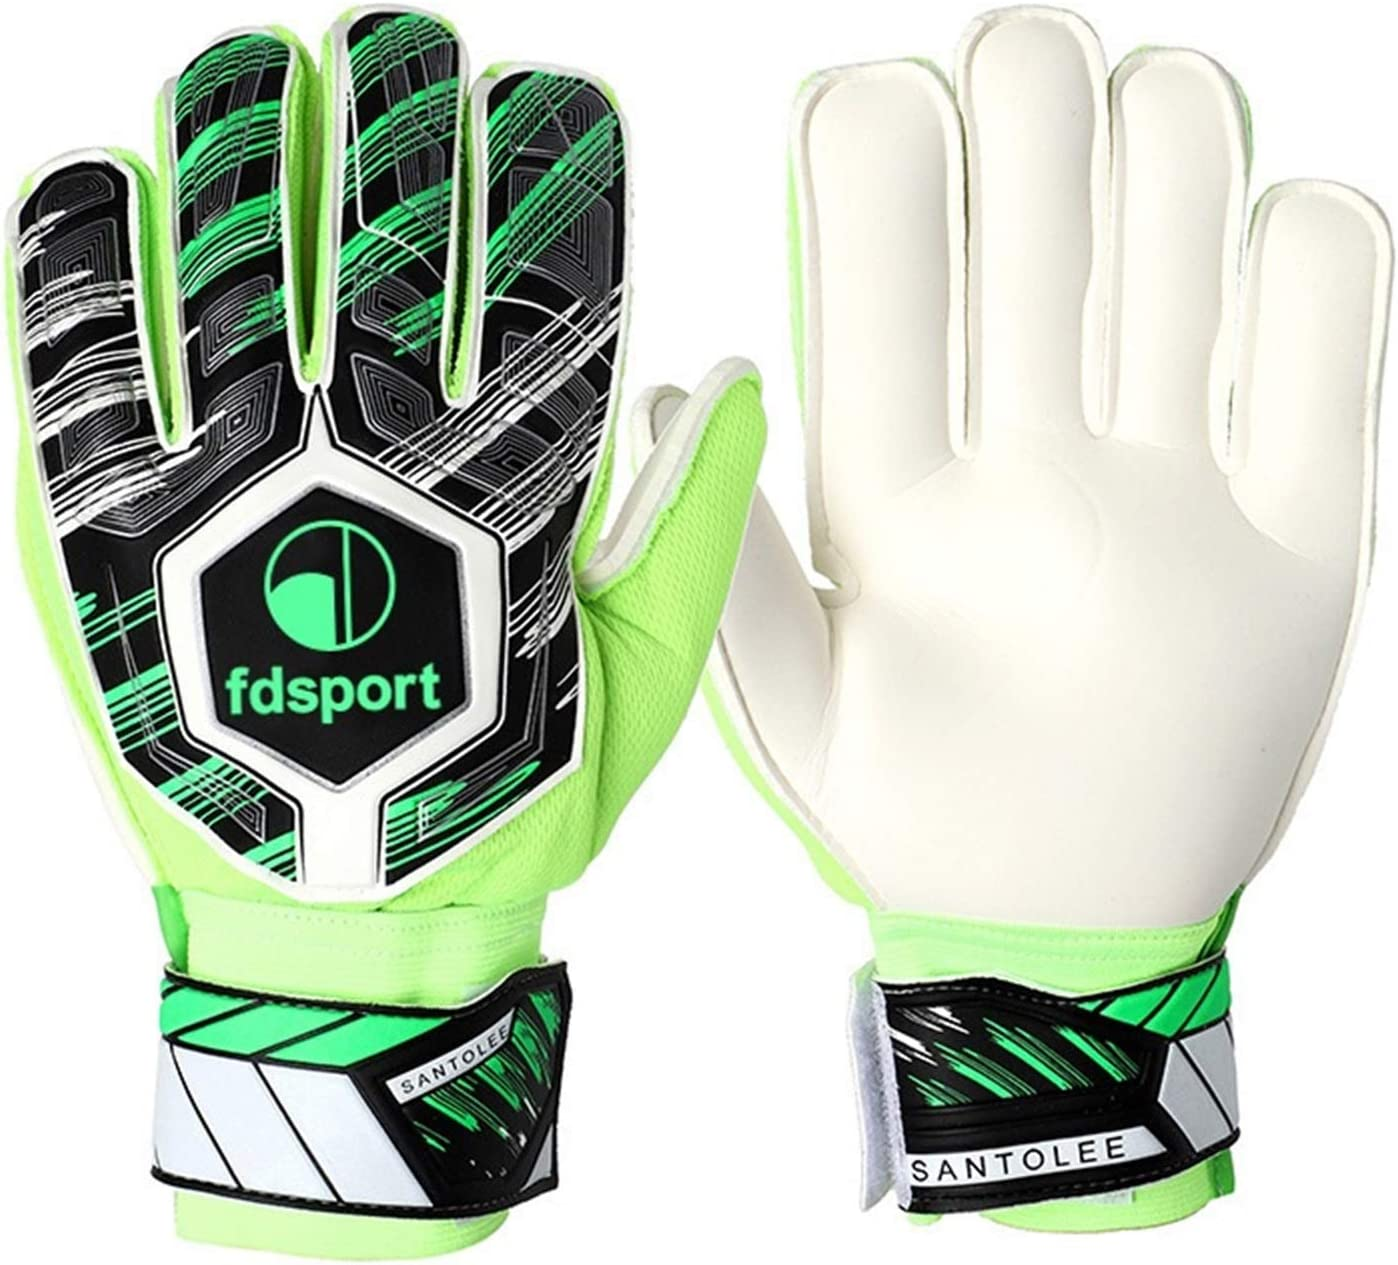 ZHIZI Goalkeeper Gloves OFFicial mail Sales results No. 1 order Receiver Sports Unise